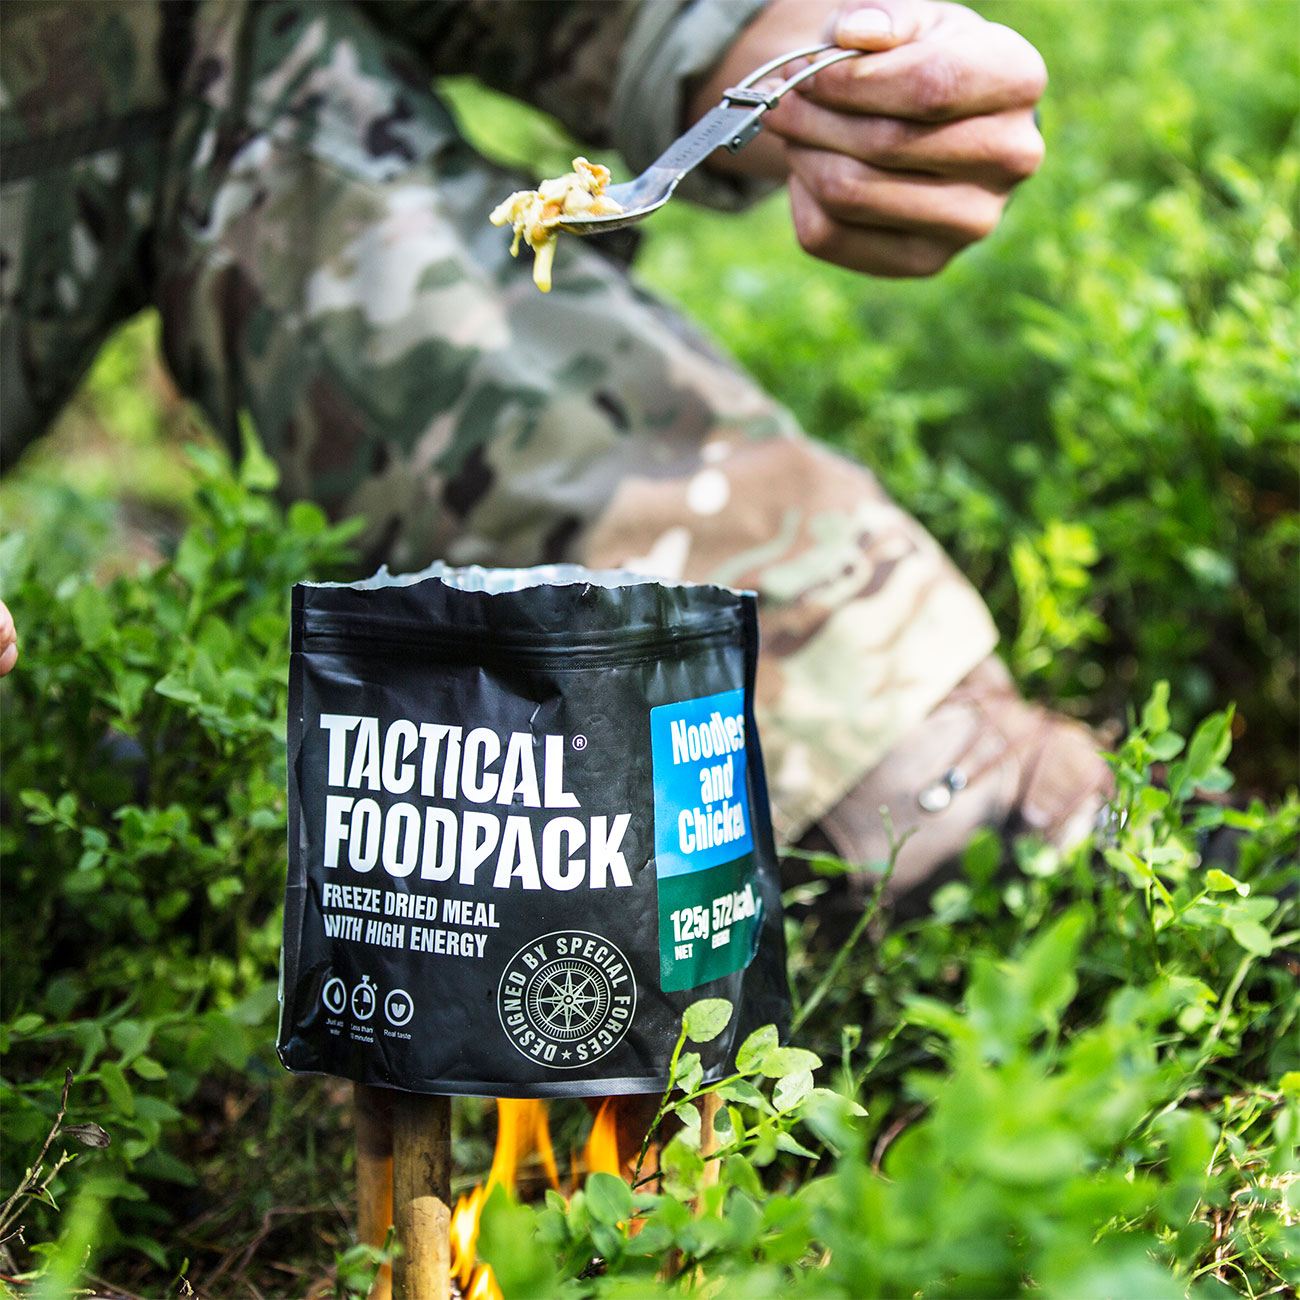 Tactical Foodpack Outdoor Mahlzeit Hühnchen mit Nudeln 6